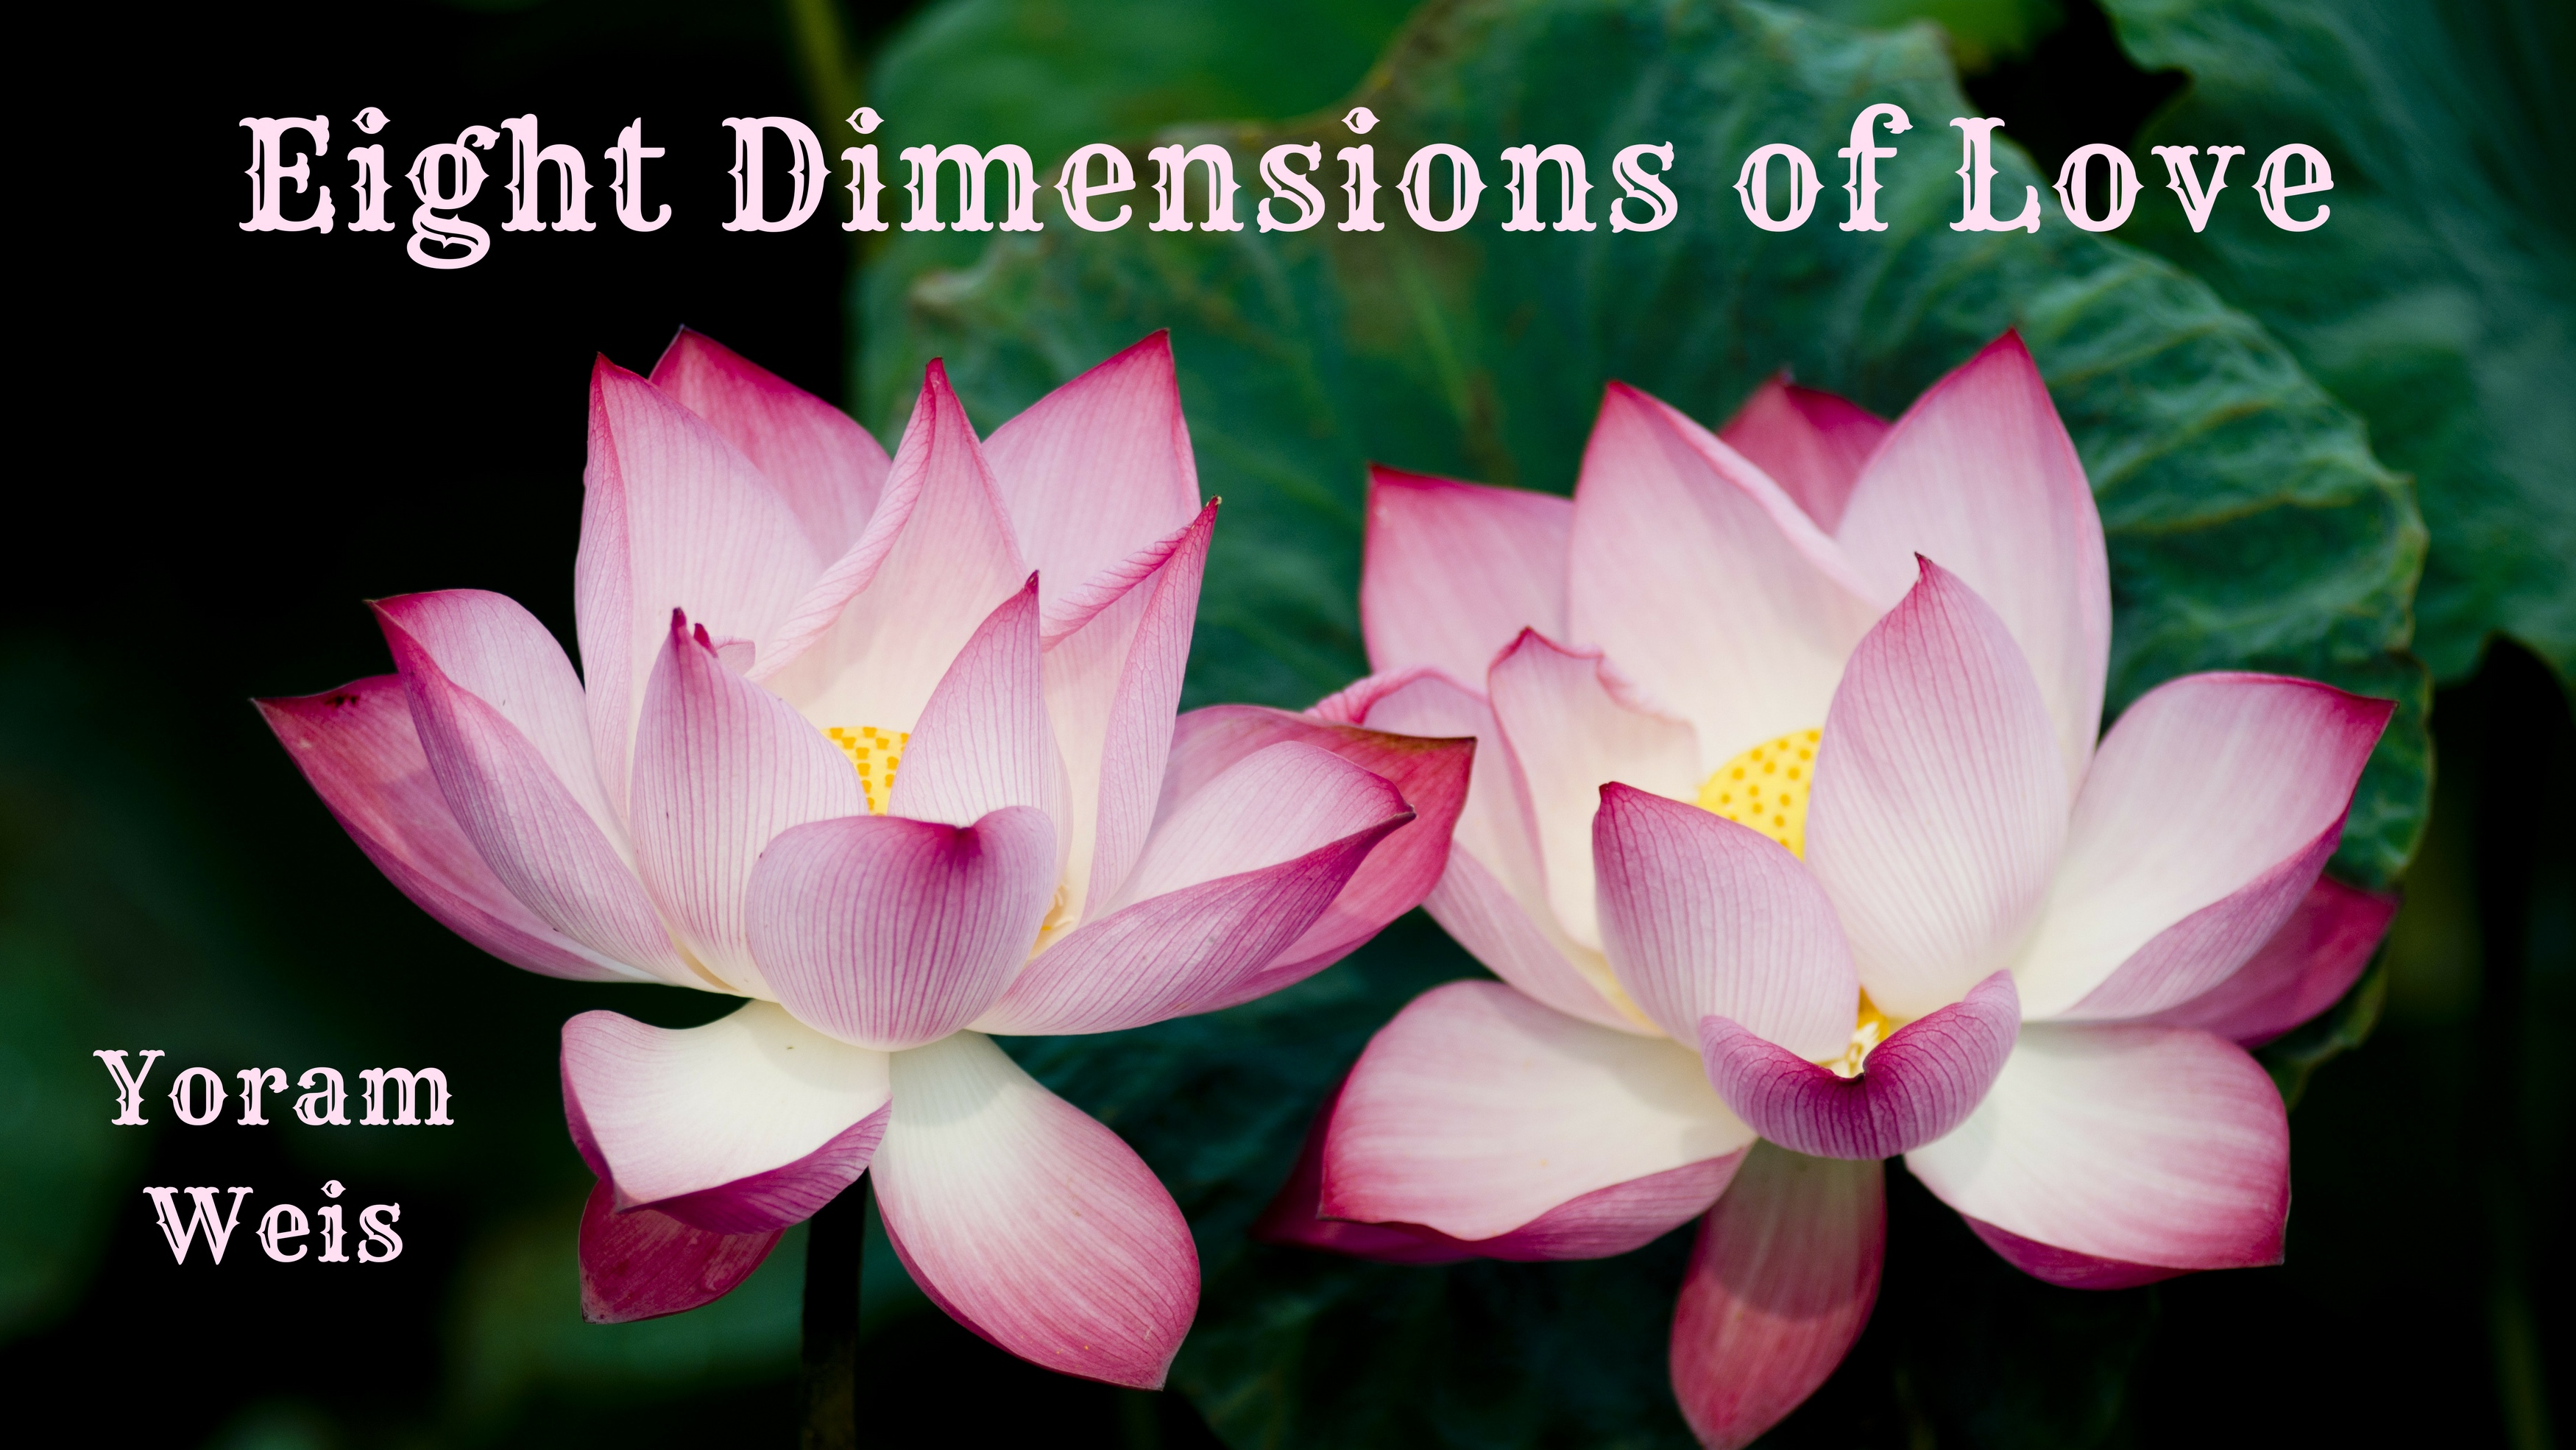 Video – Eight Dimensions of Love